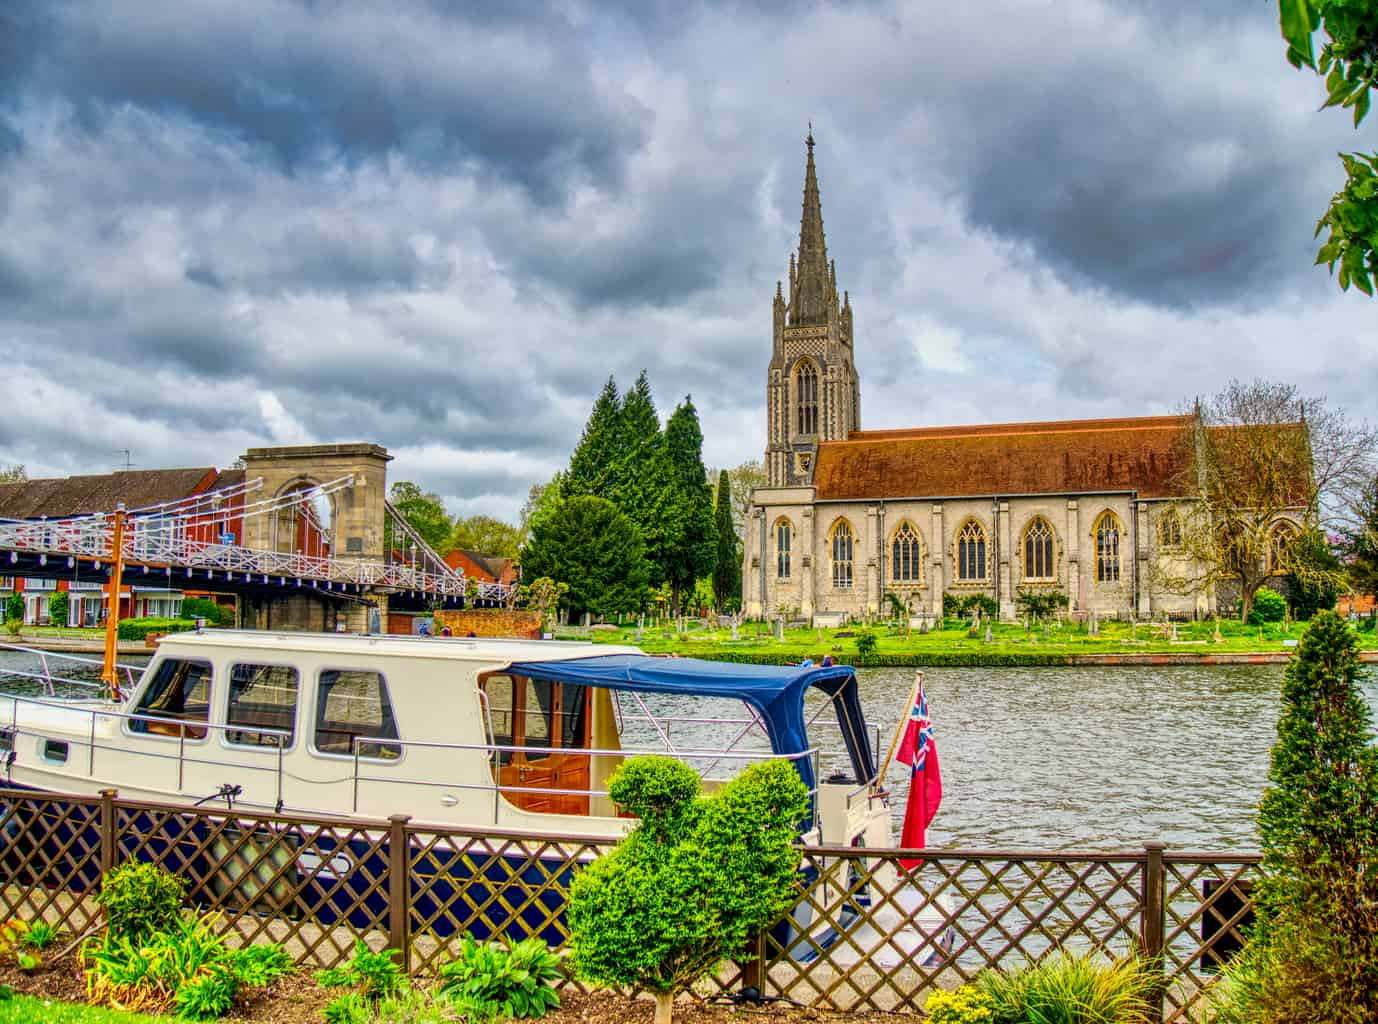 A boat on a river in Marlow with a church behind with dark clouds and green trees